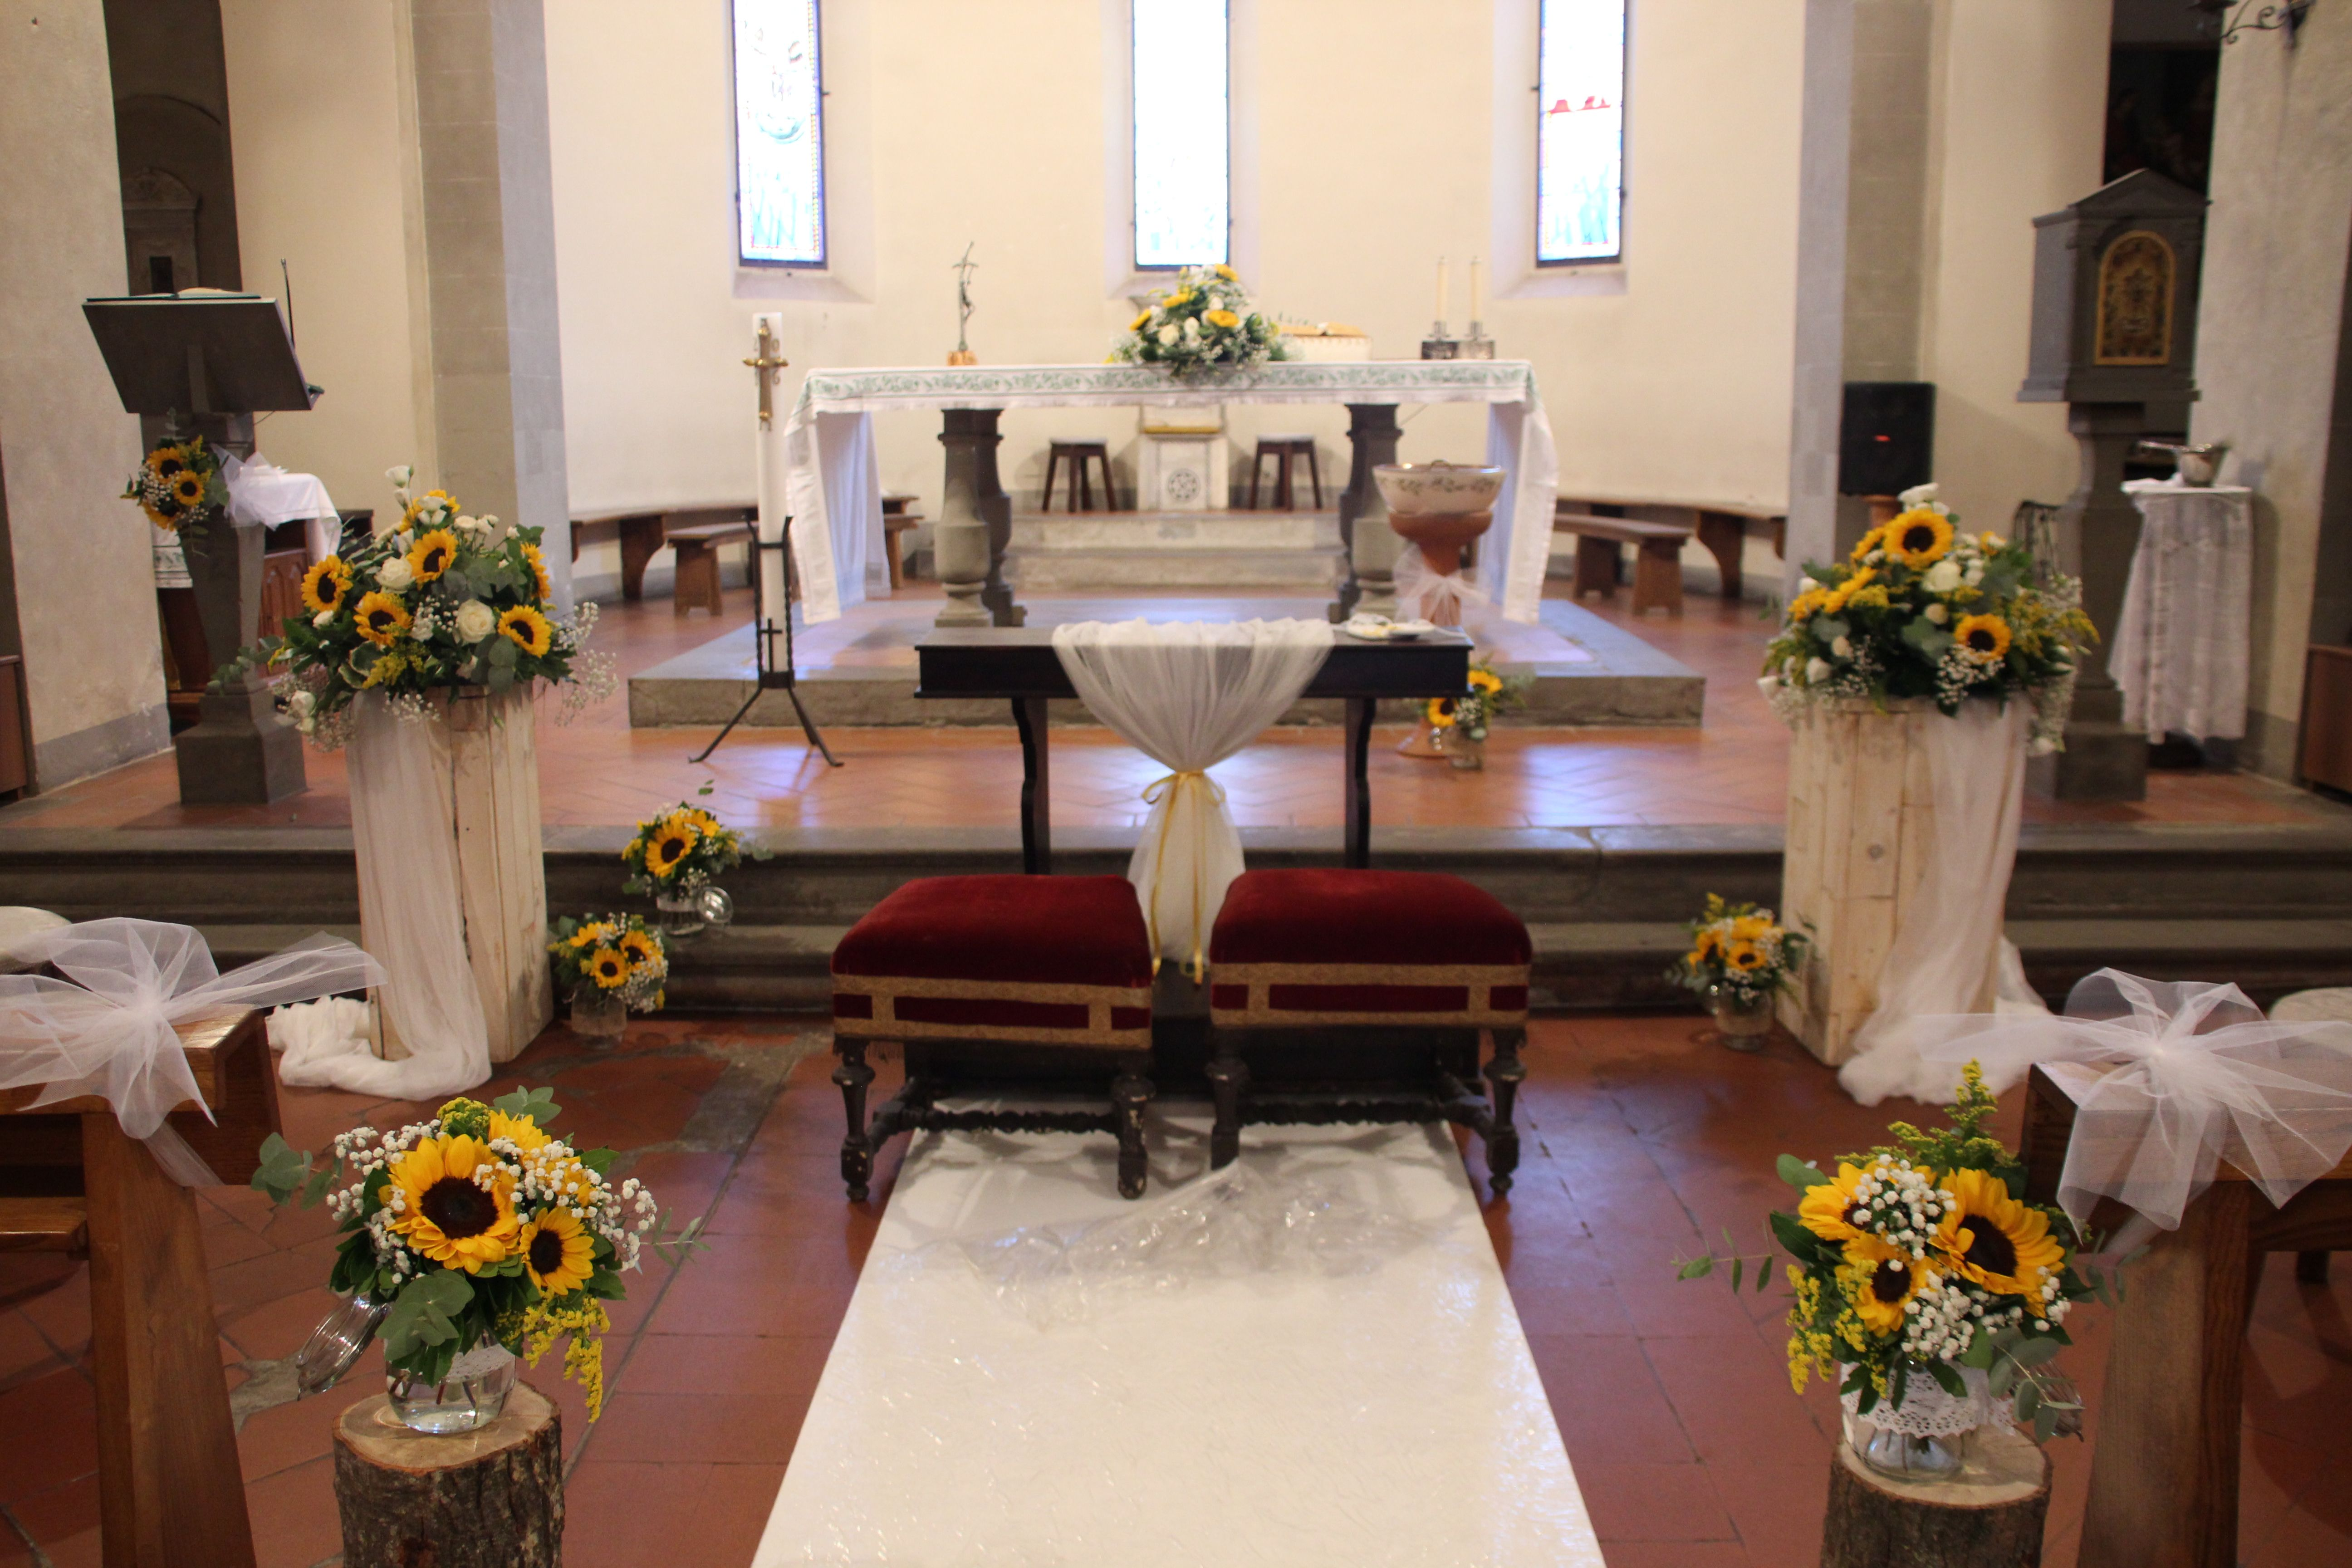 The Country Wood Decoration Sunflower Girasoli Matrimonio Chiesa E Legno Decorazioni Per La Chiesa Decorazioni Nuziali Addobbi Floreali Matrimonio